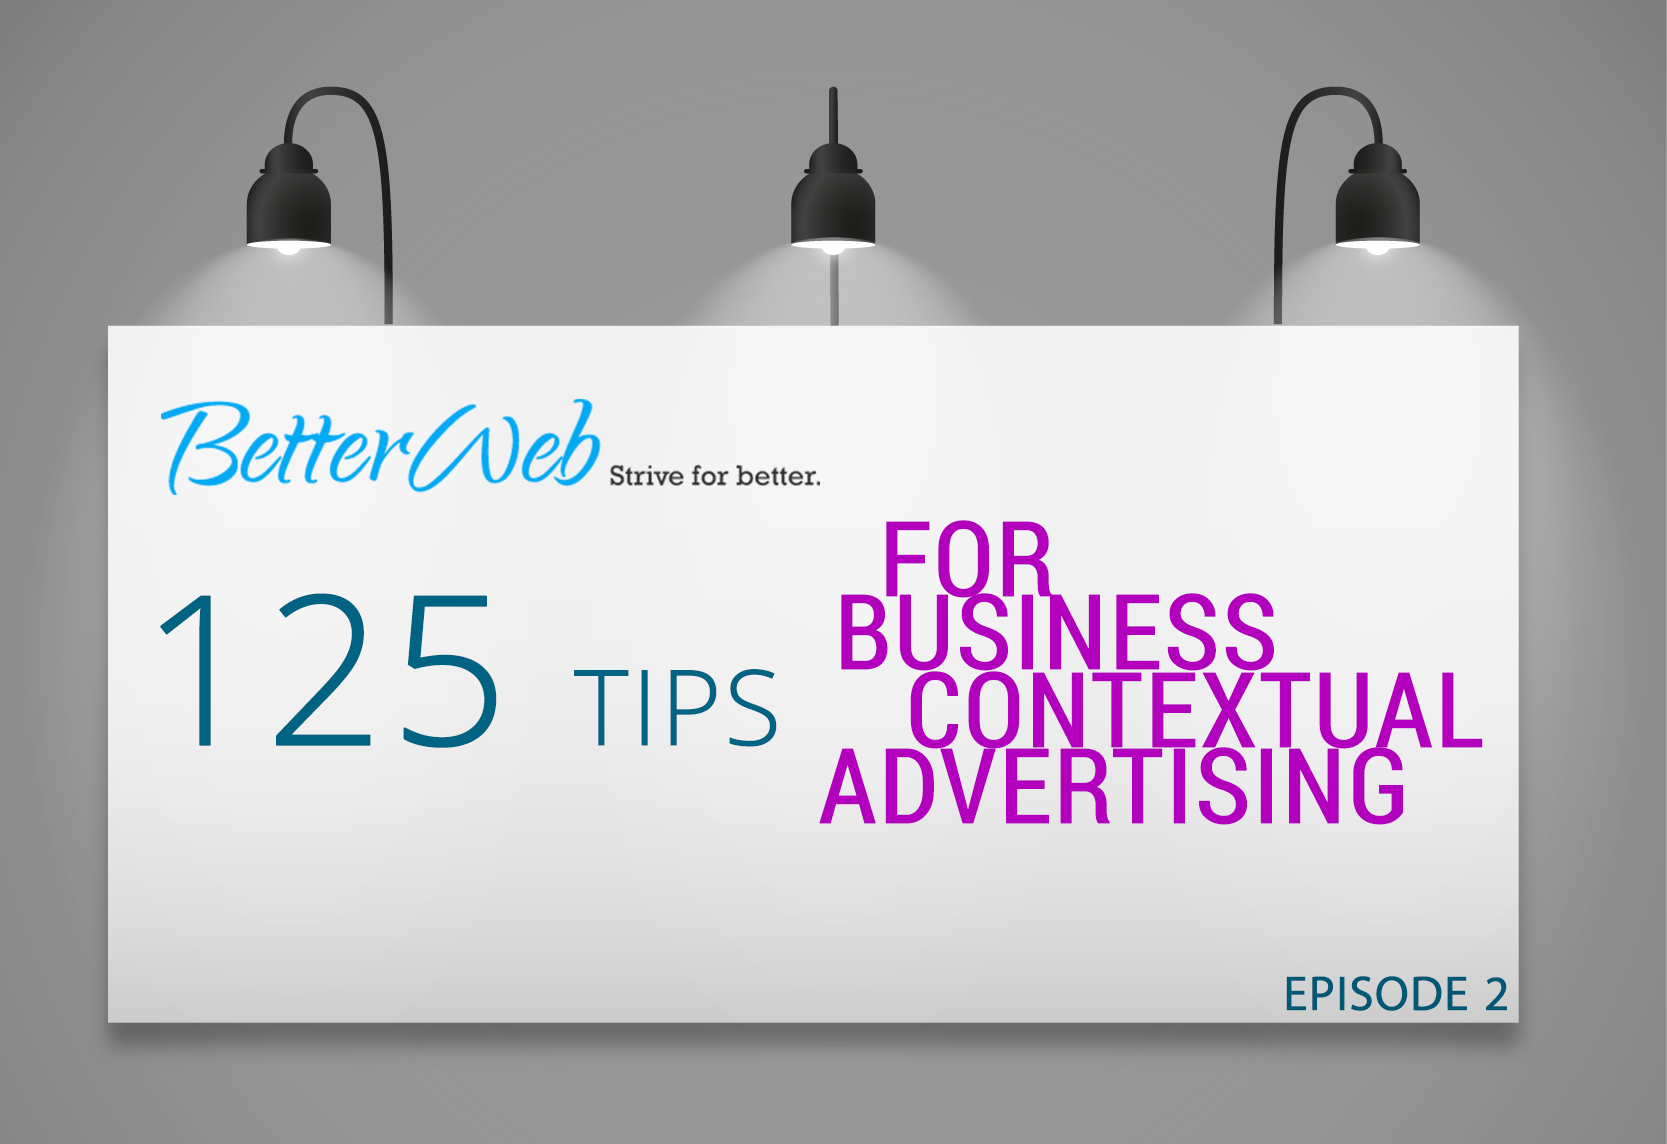 125 Tips For Business Contextual Advertising. Episode 2